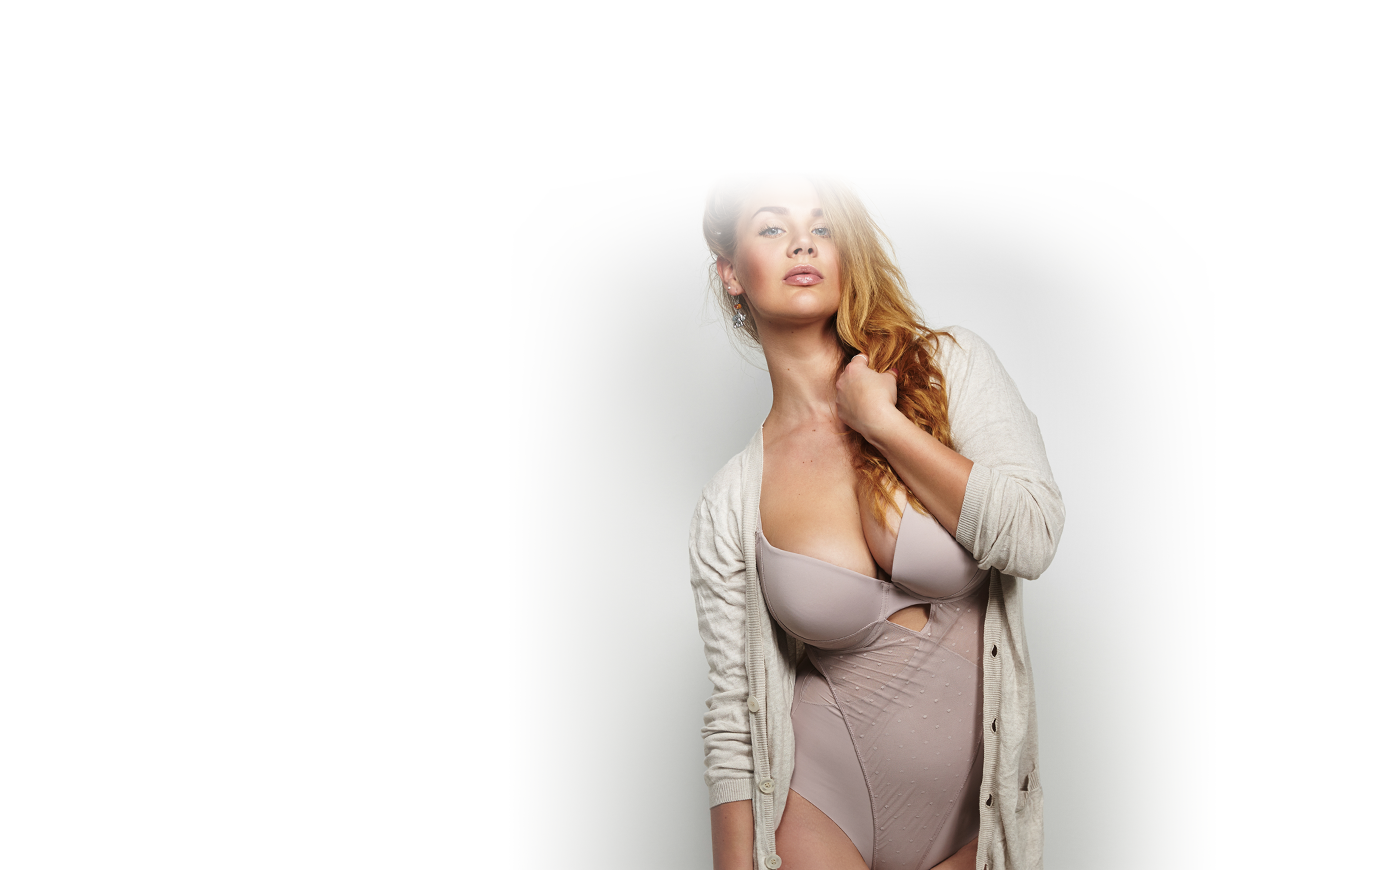 Body Lift After Weight Loss model